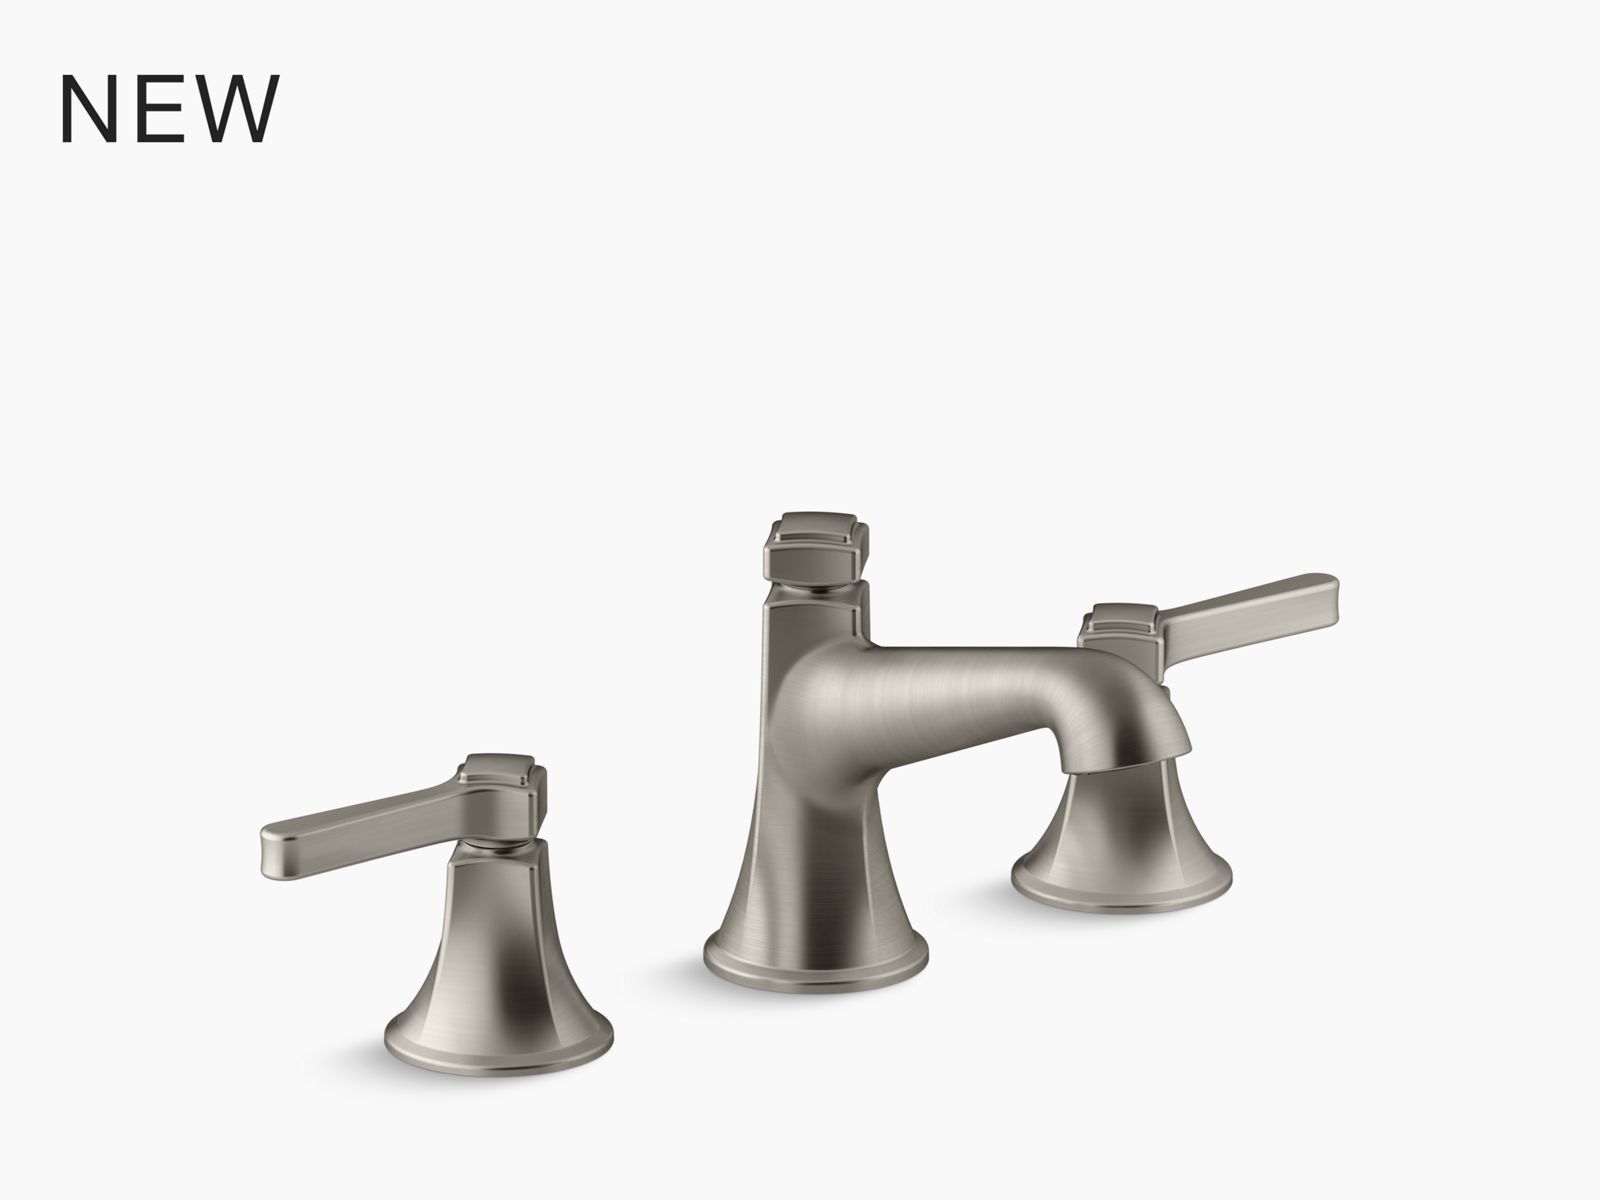 forte single hole or 3 hole kitchen sink faucet with 10 1 8 pull out spray spout